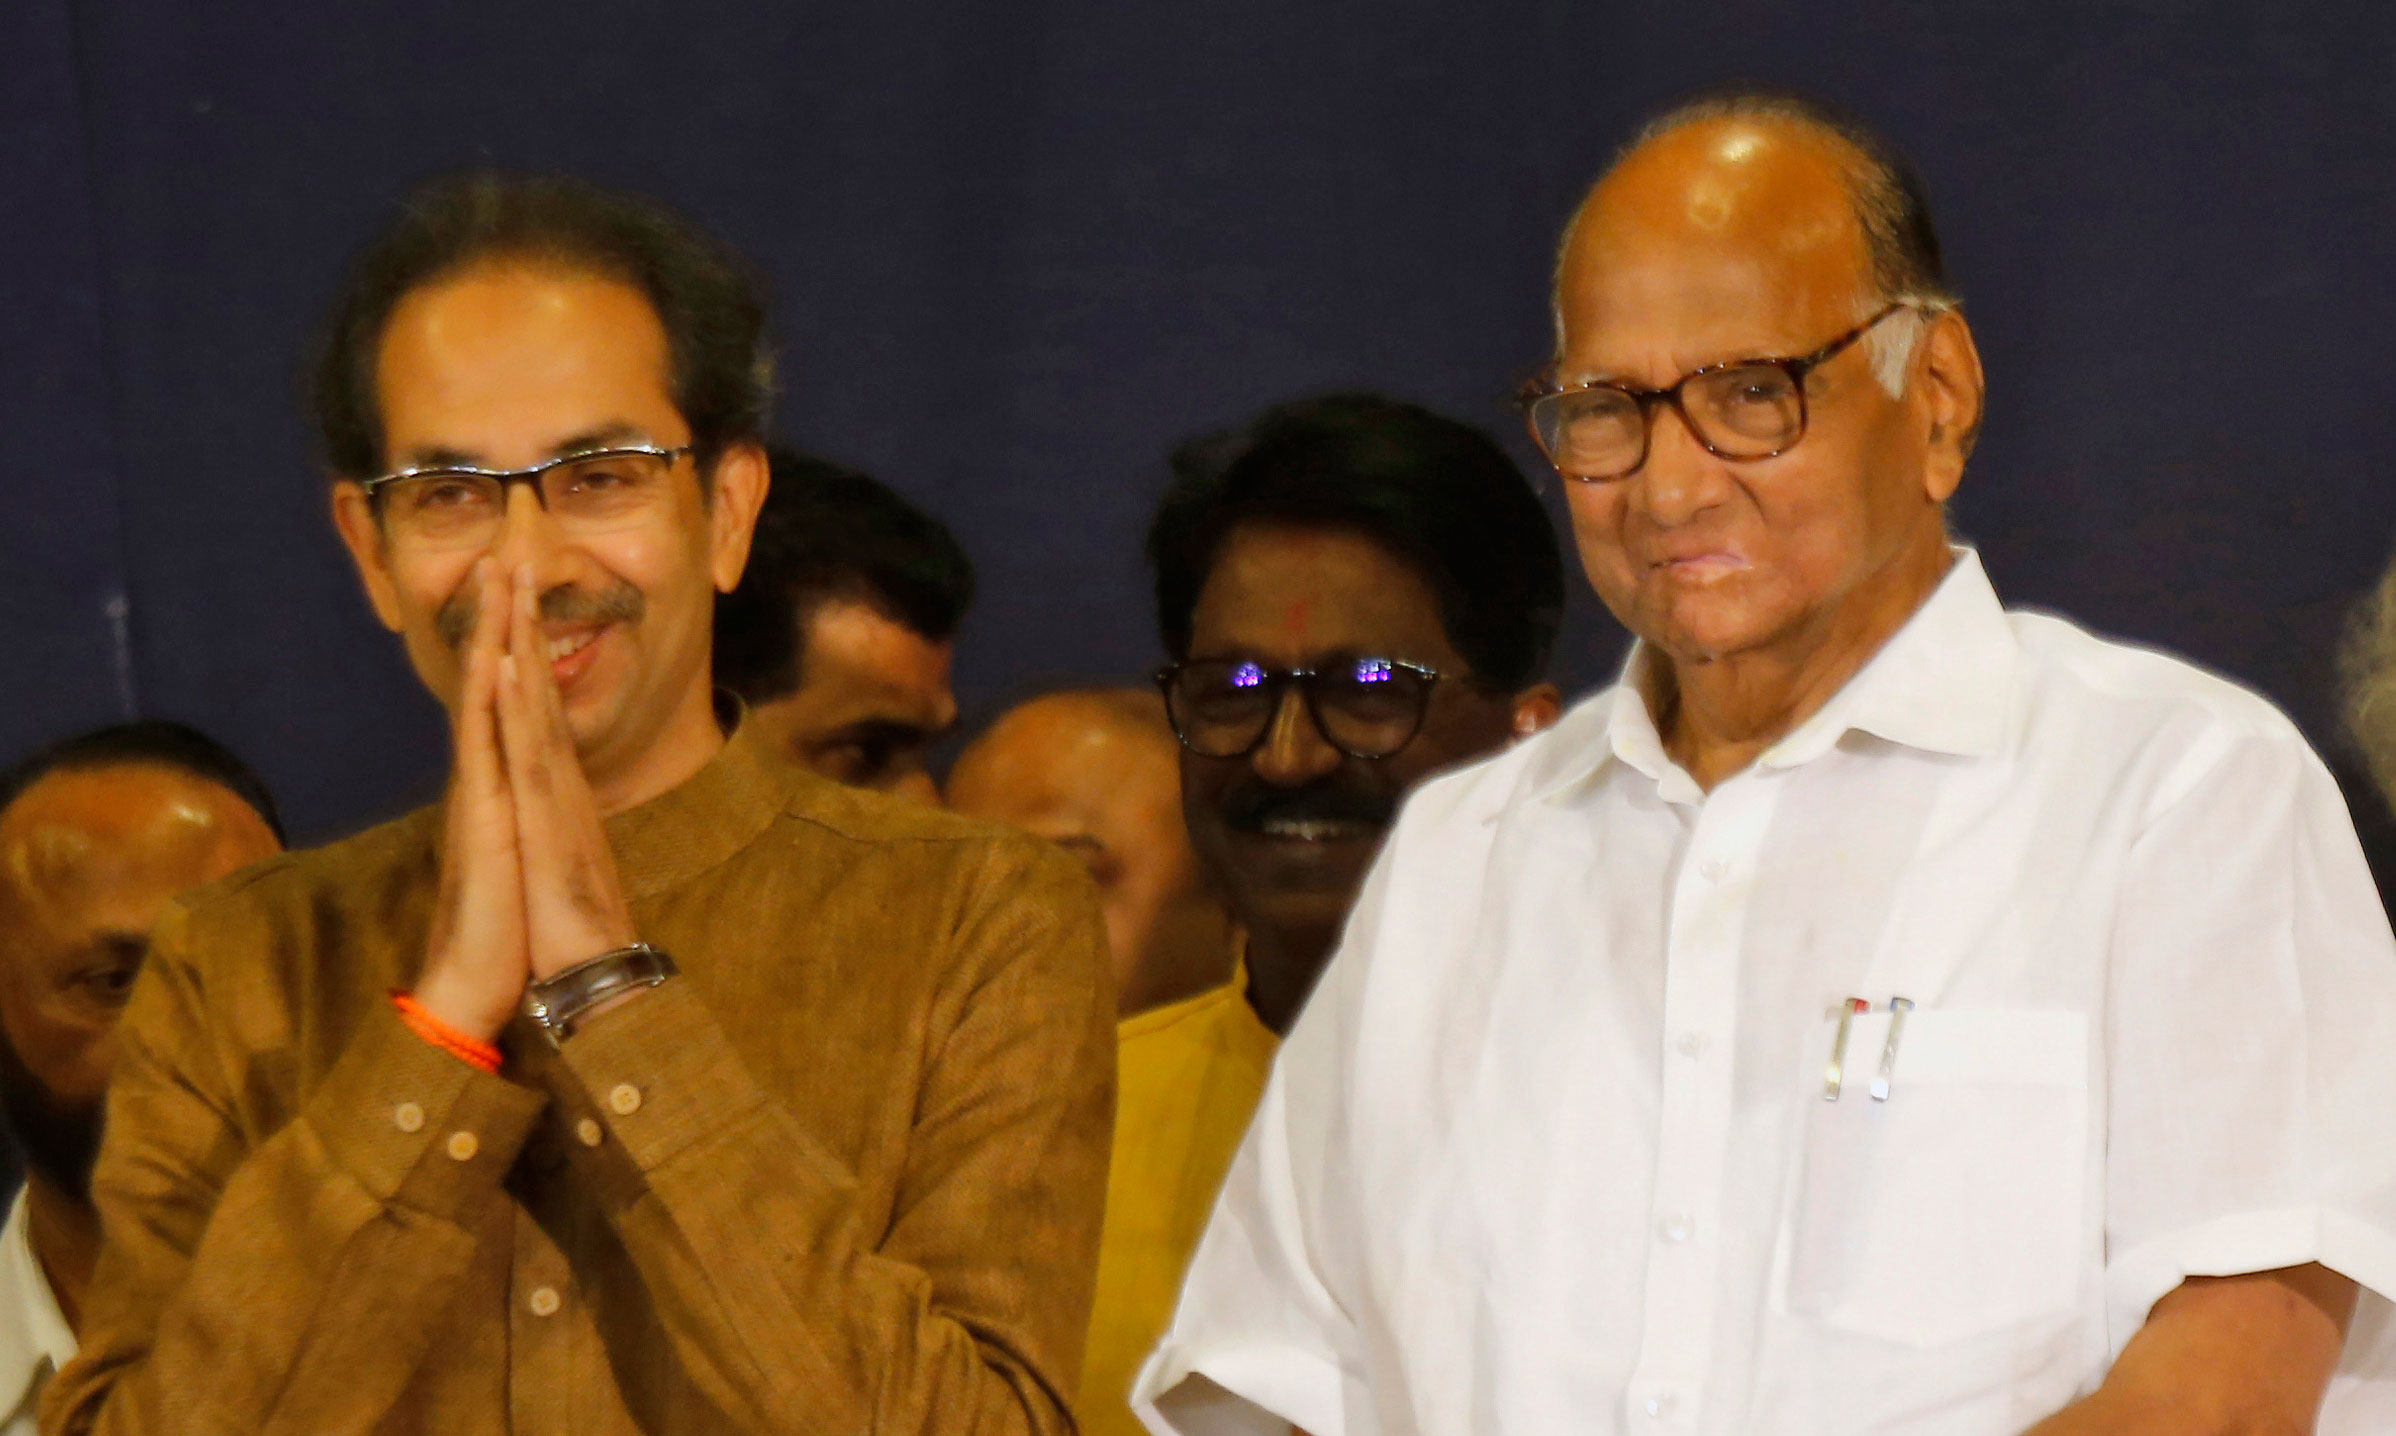 Shiv Sena chief Uddhav Thackeray and Nationalist Congress Party president Sharad Pawar attend a press conference in Mumbai on Saturday, November 23, 2019